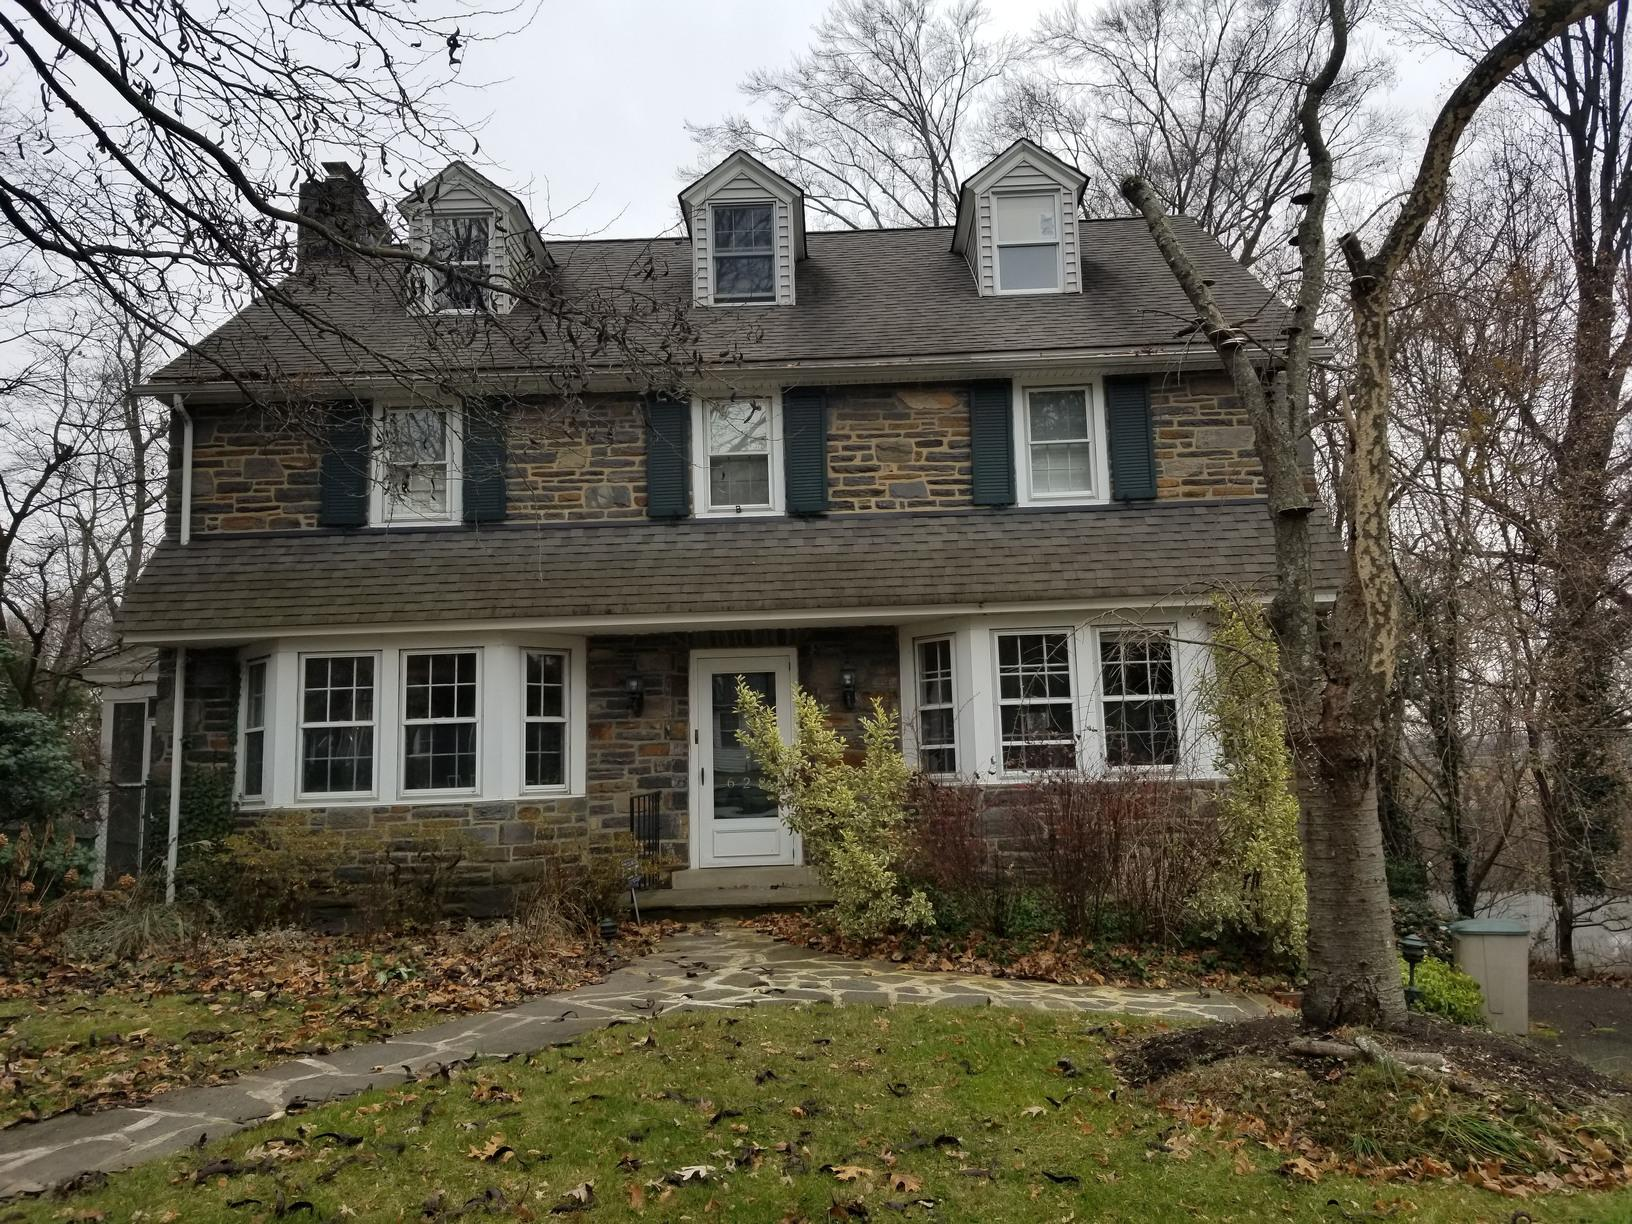 Faux Stone on the Rest of Home